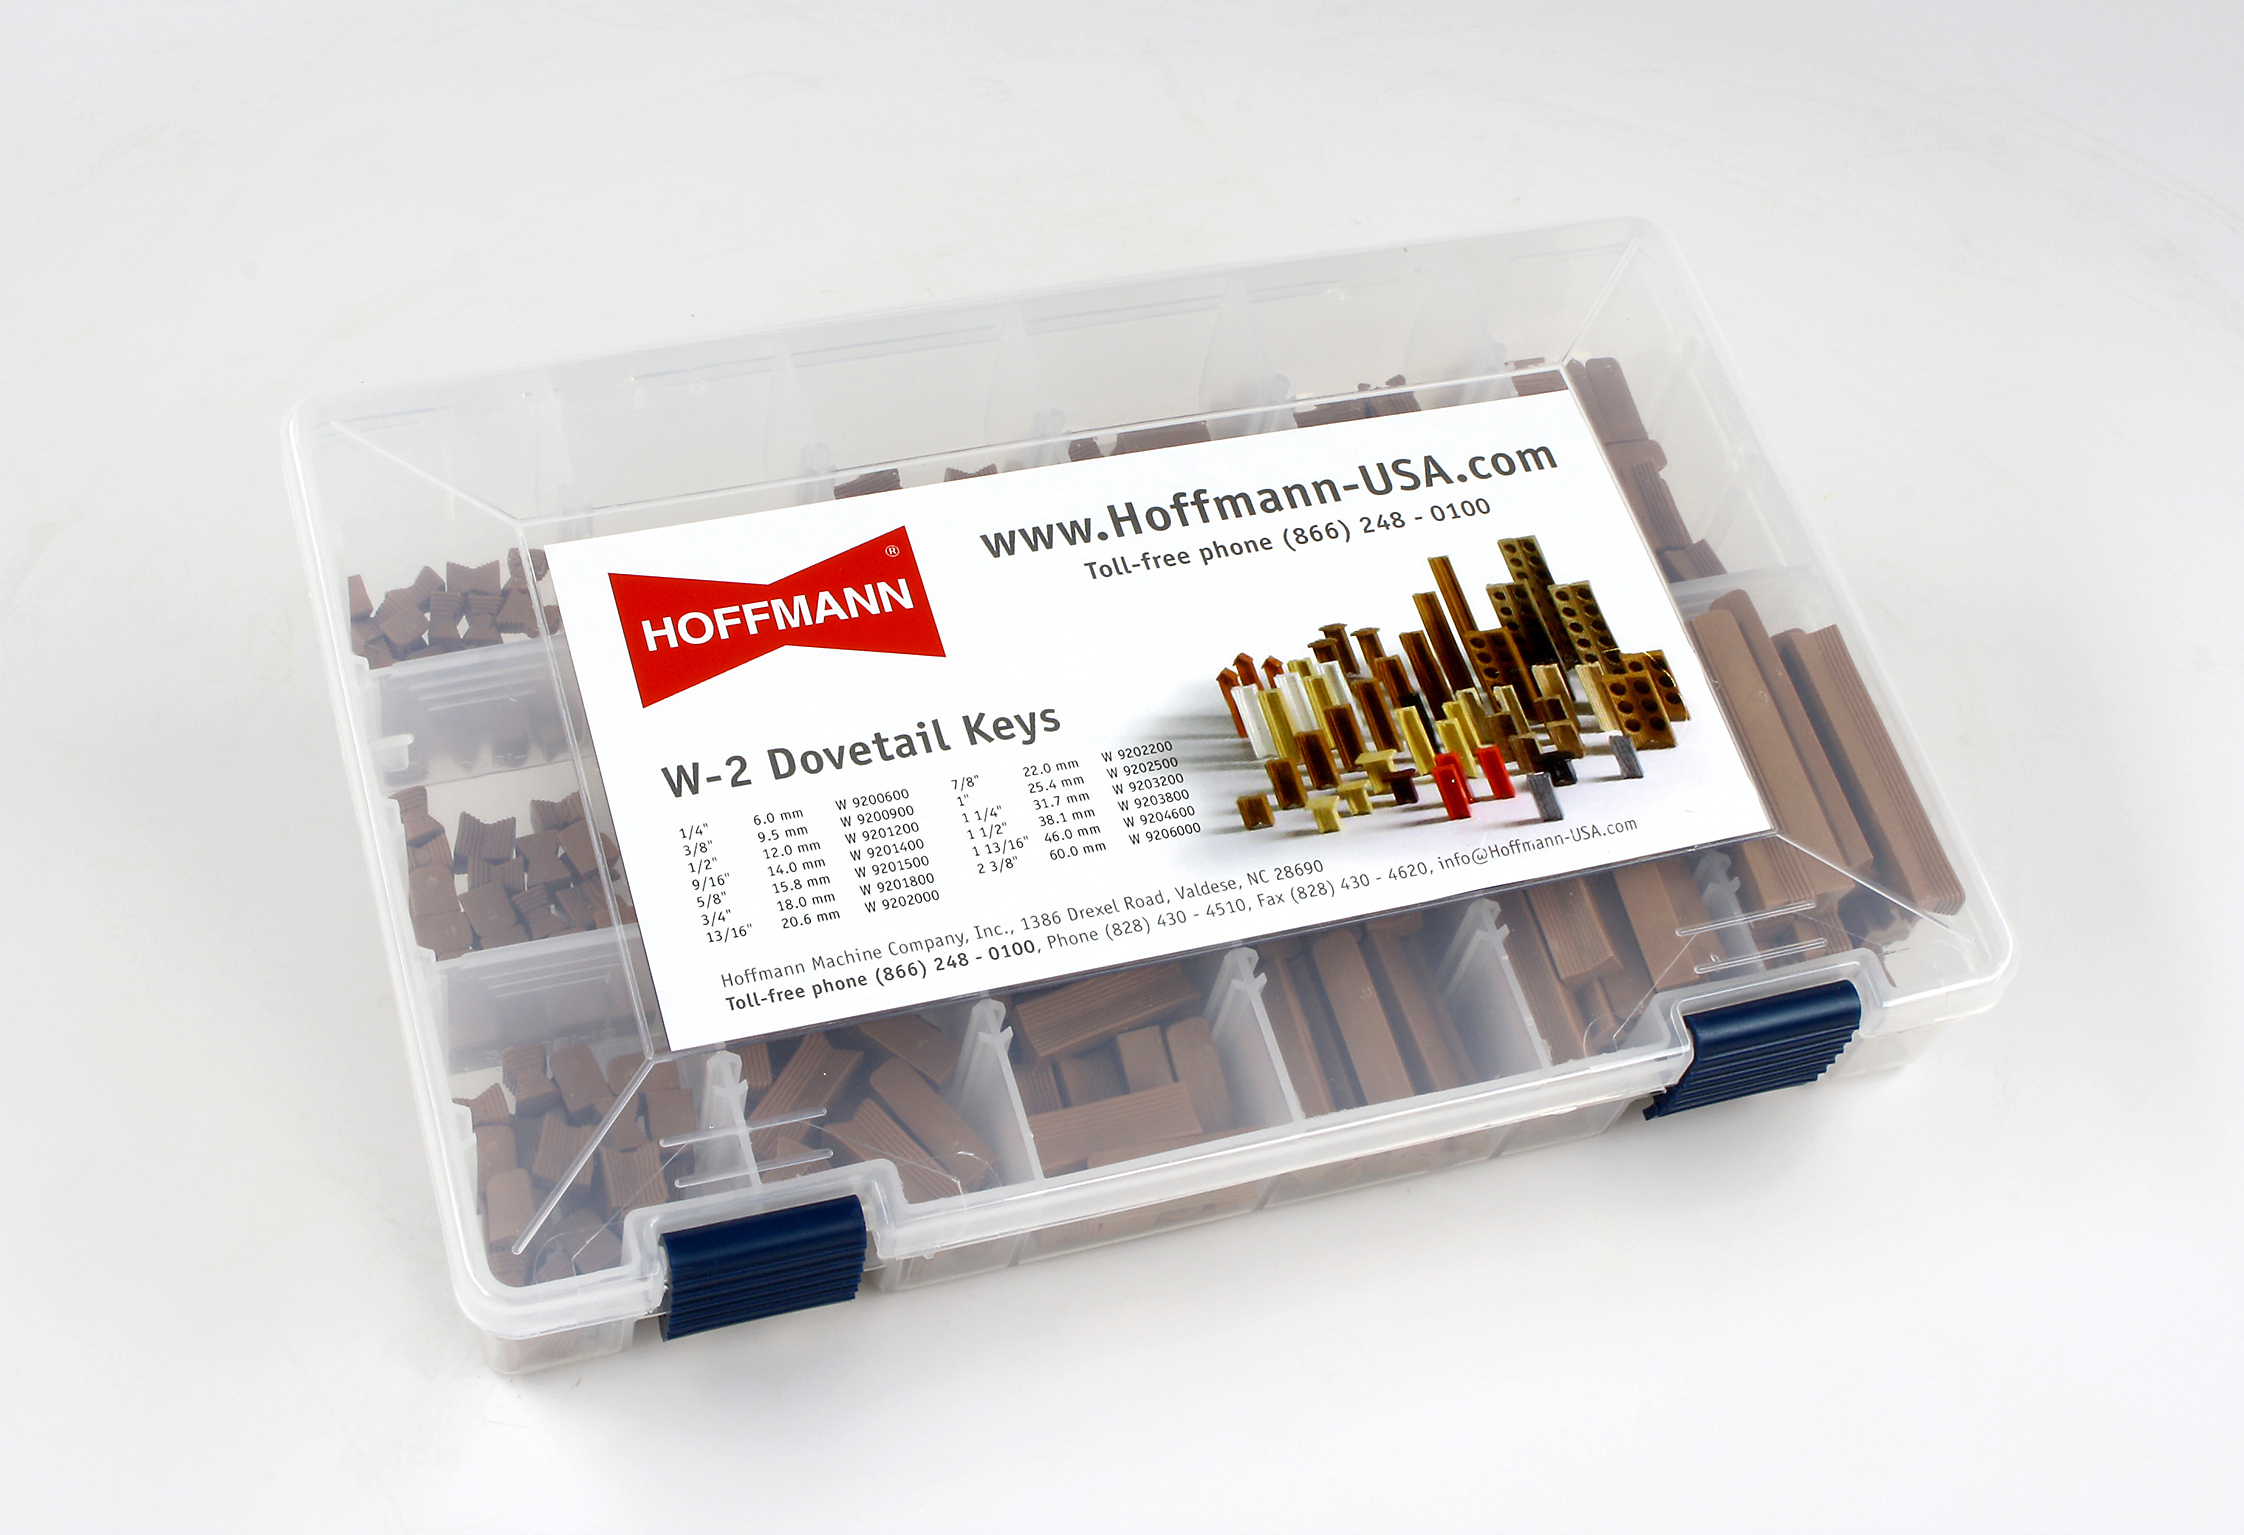 hoffmann-dovetail-key-sample-case-w2-closed.jpg